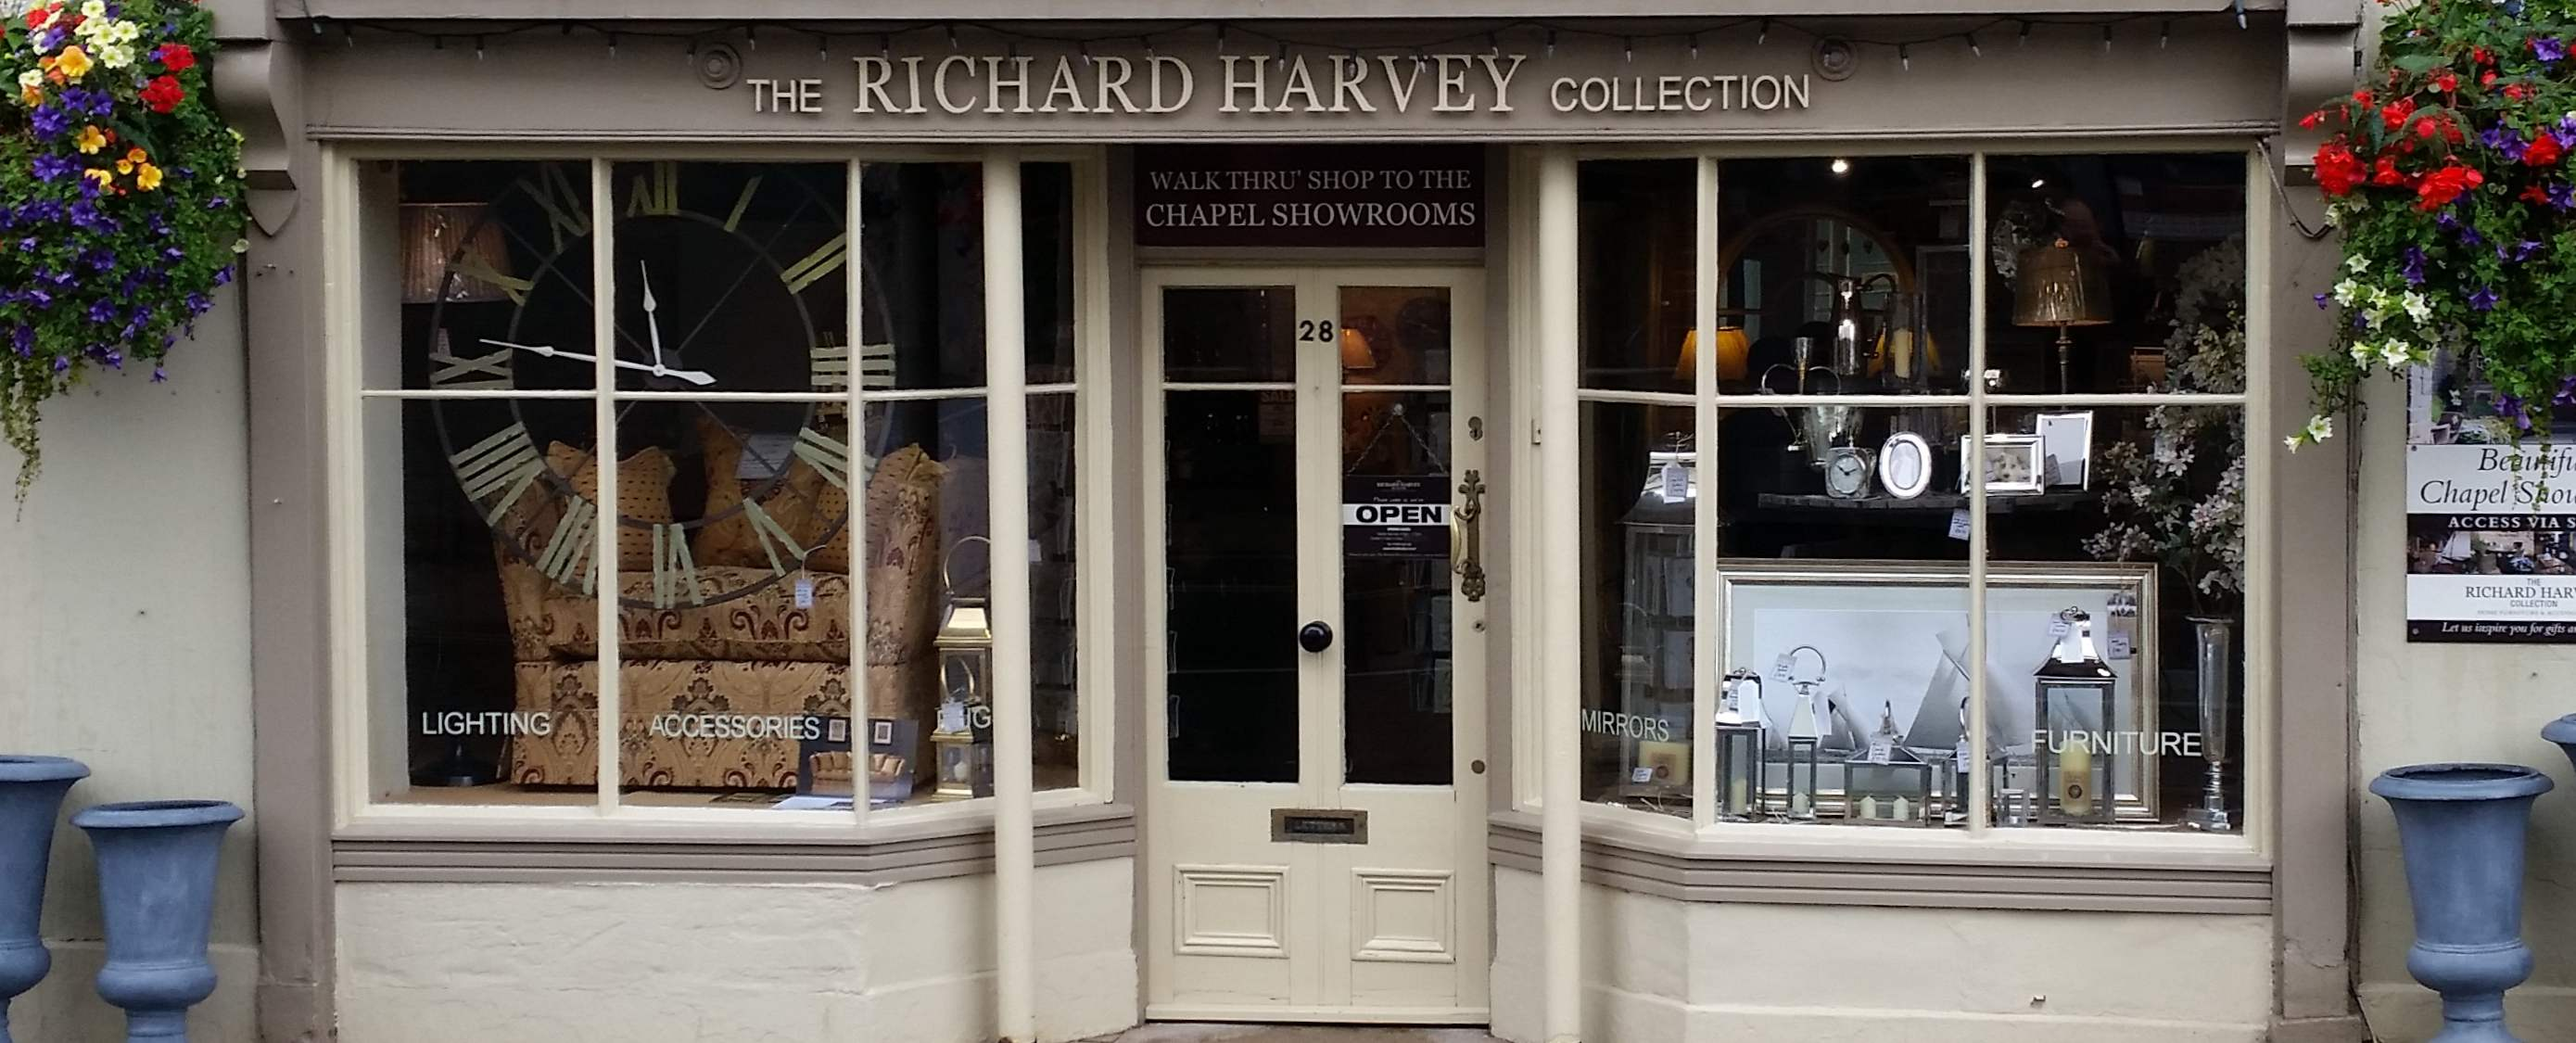 The Richard Harvey Collection shop in Shipston-On-Stour